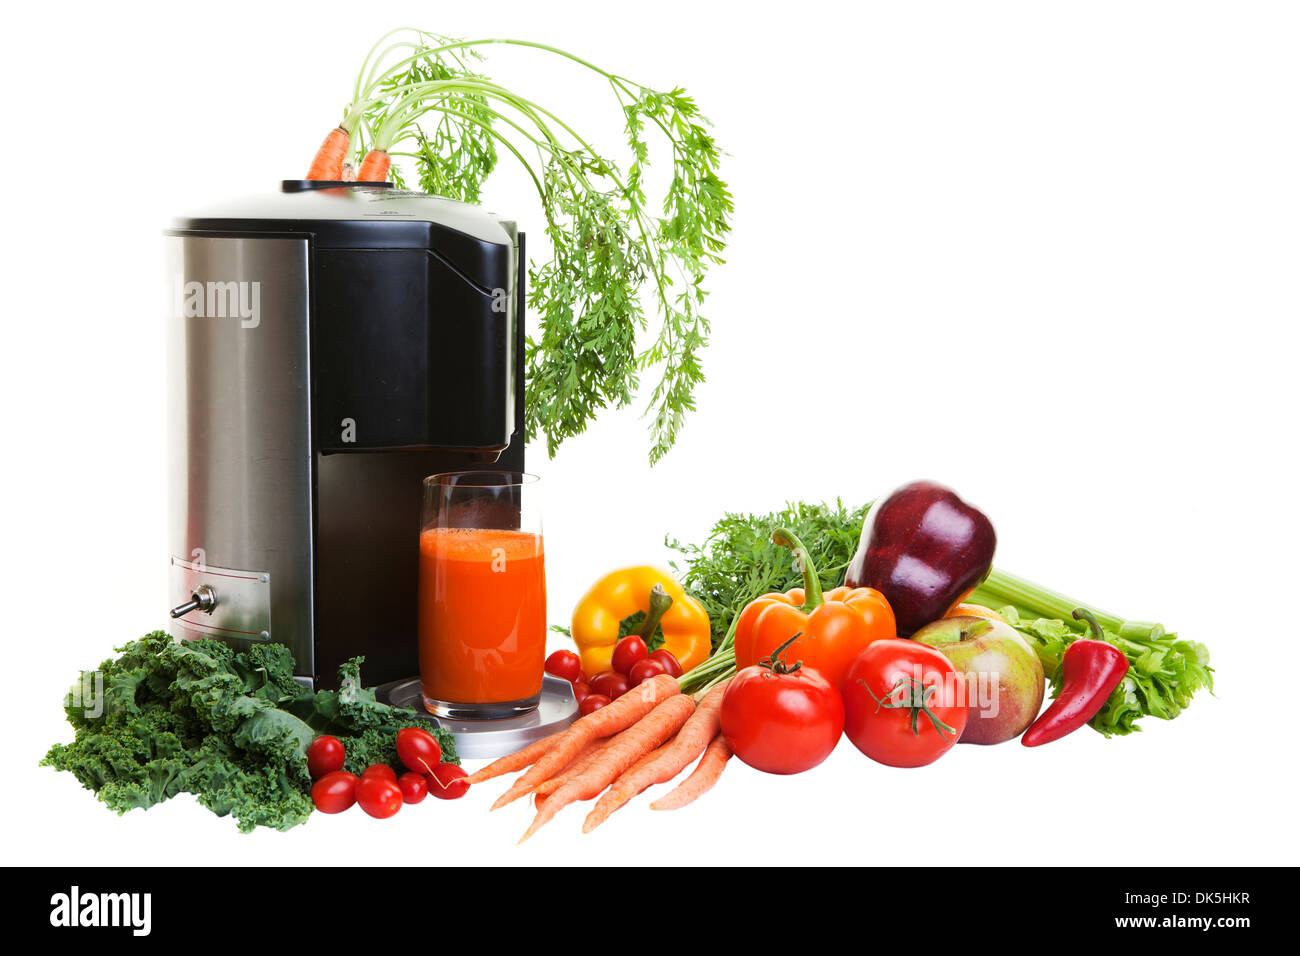 A Juicer surrounded by healthy vegetables and fruit, isolated on white. - Stock Image